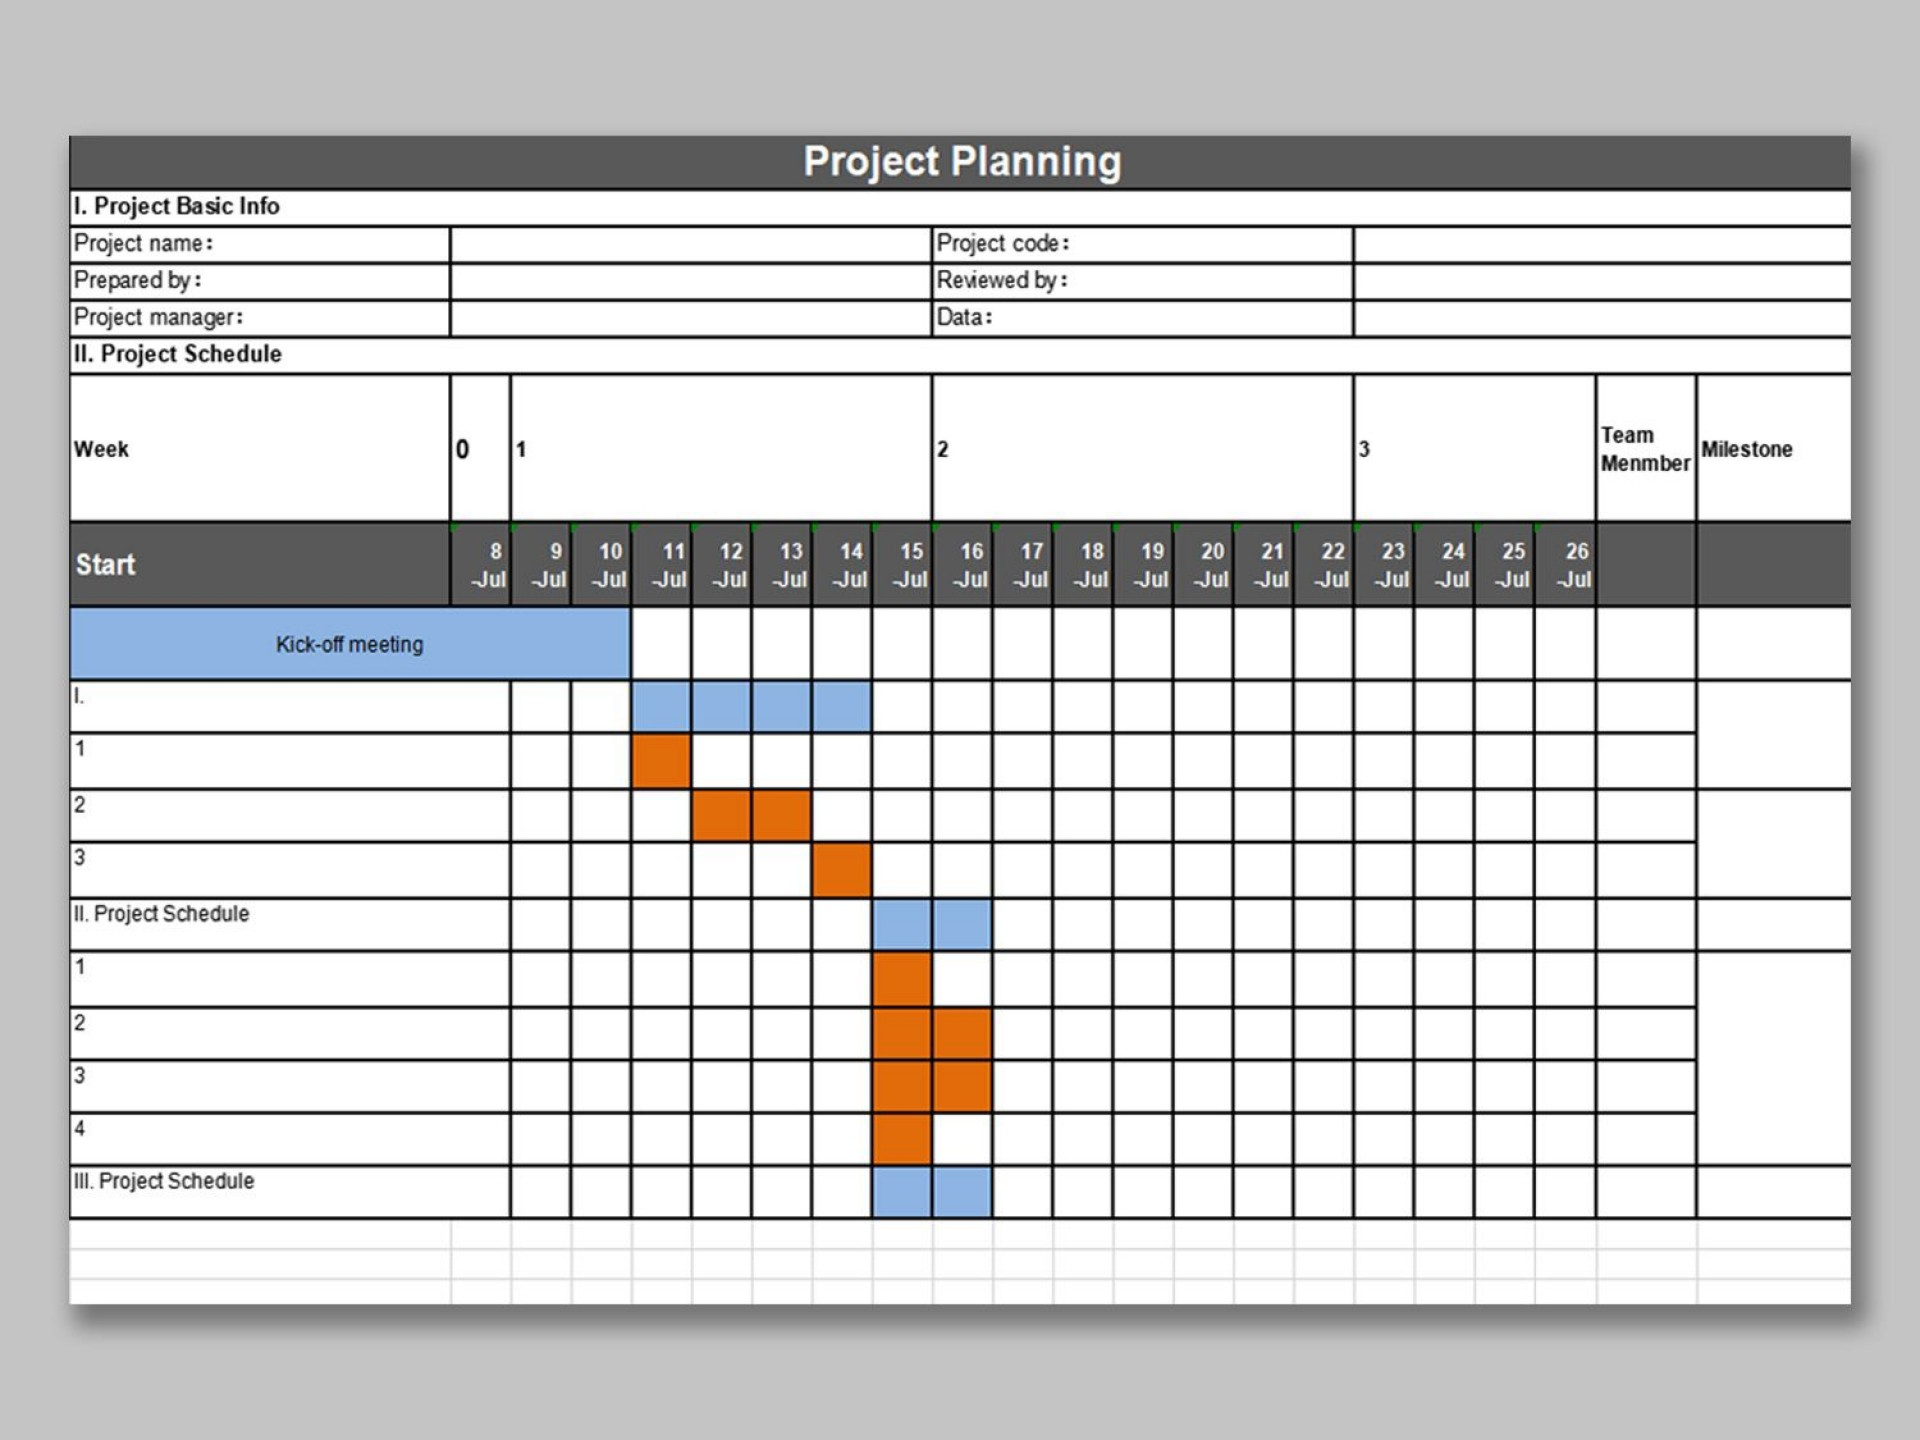 001 Impressive Project Management Plan Template Free Inspiration  Word Simple Excel Download1920